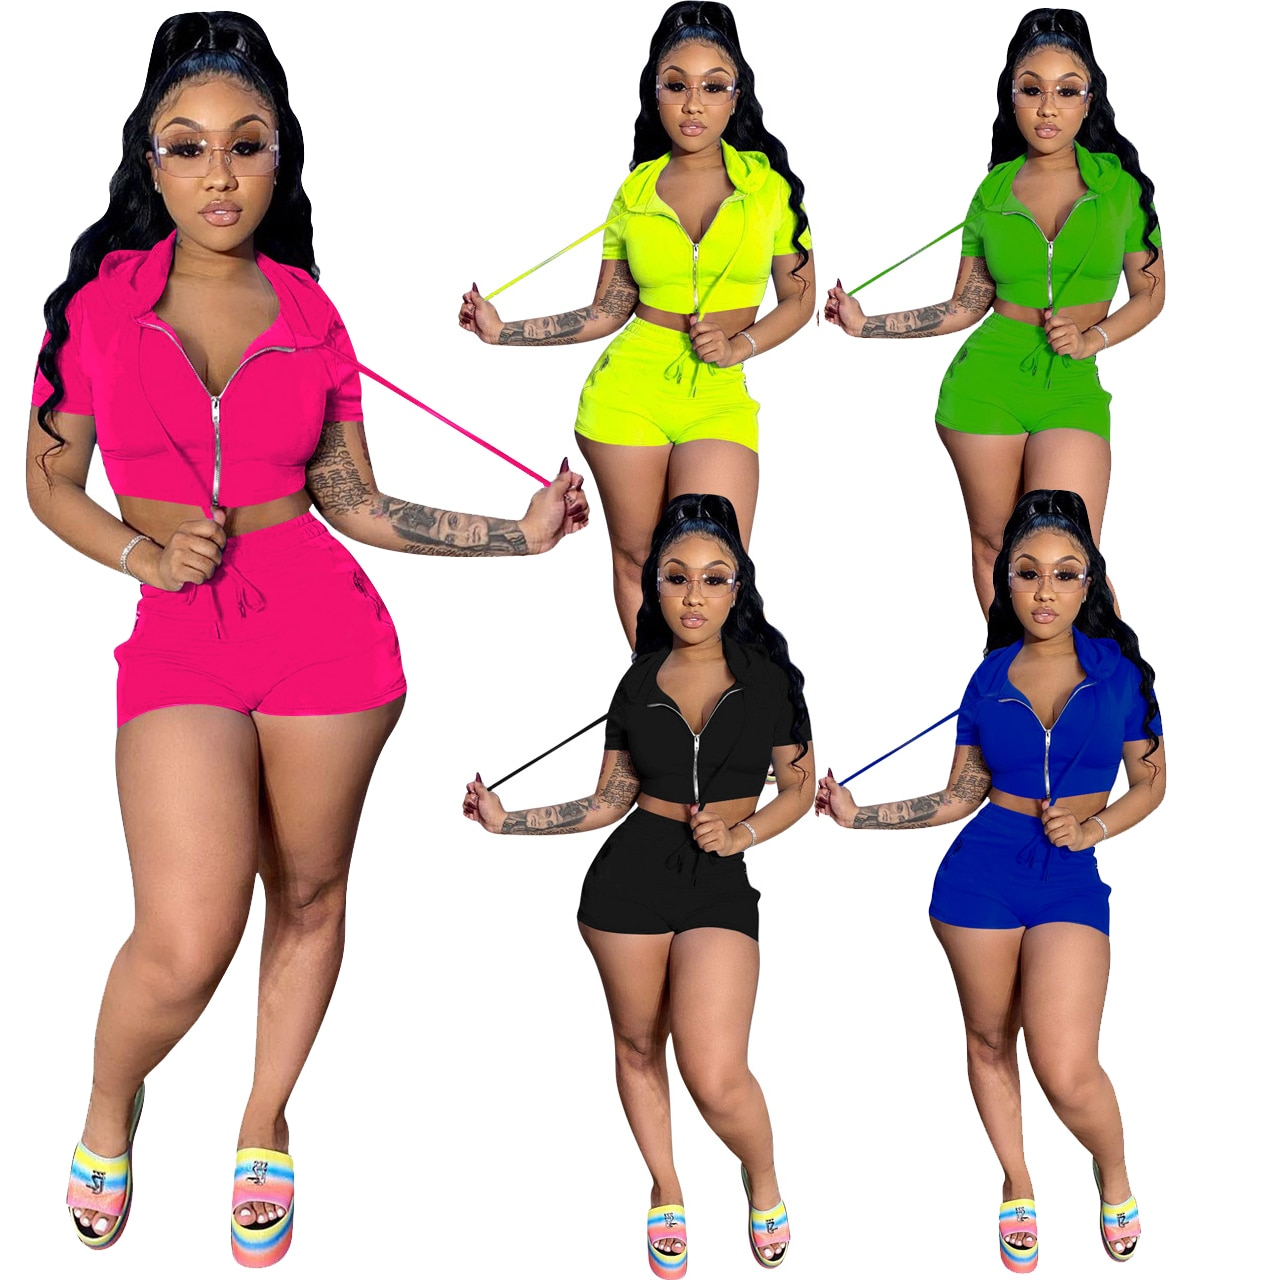 Solid Color Sports Suit Hooded Crop Top Shorts Spring Summer Vintage Clothing High-Waisted Two Piece Set Ladies 2021 For Women'S